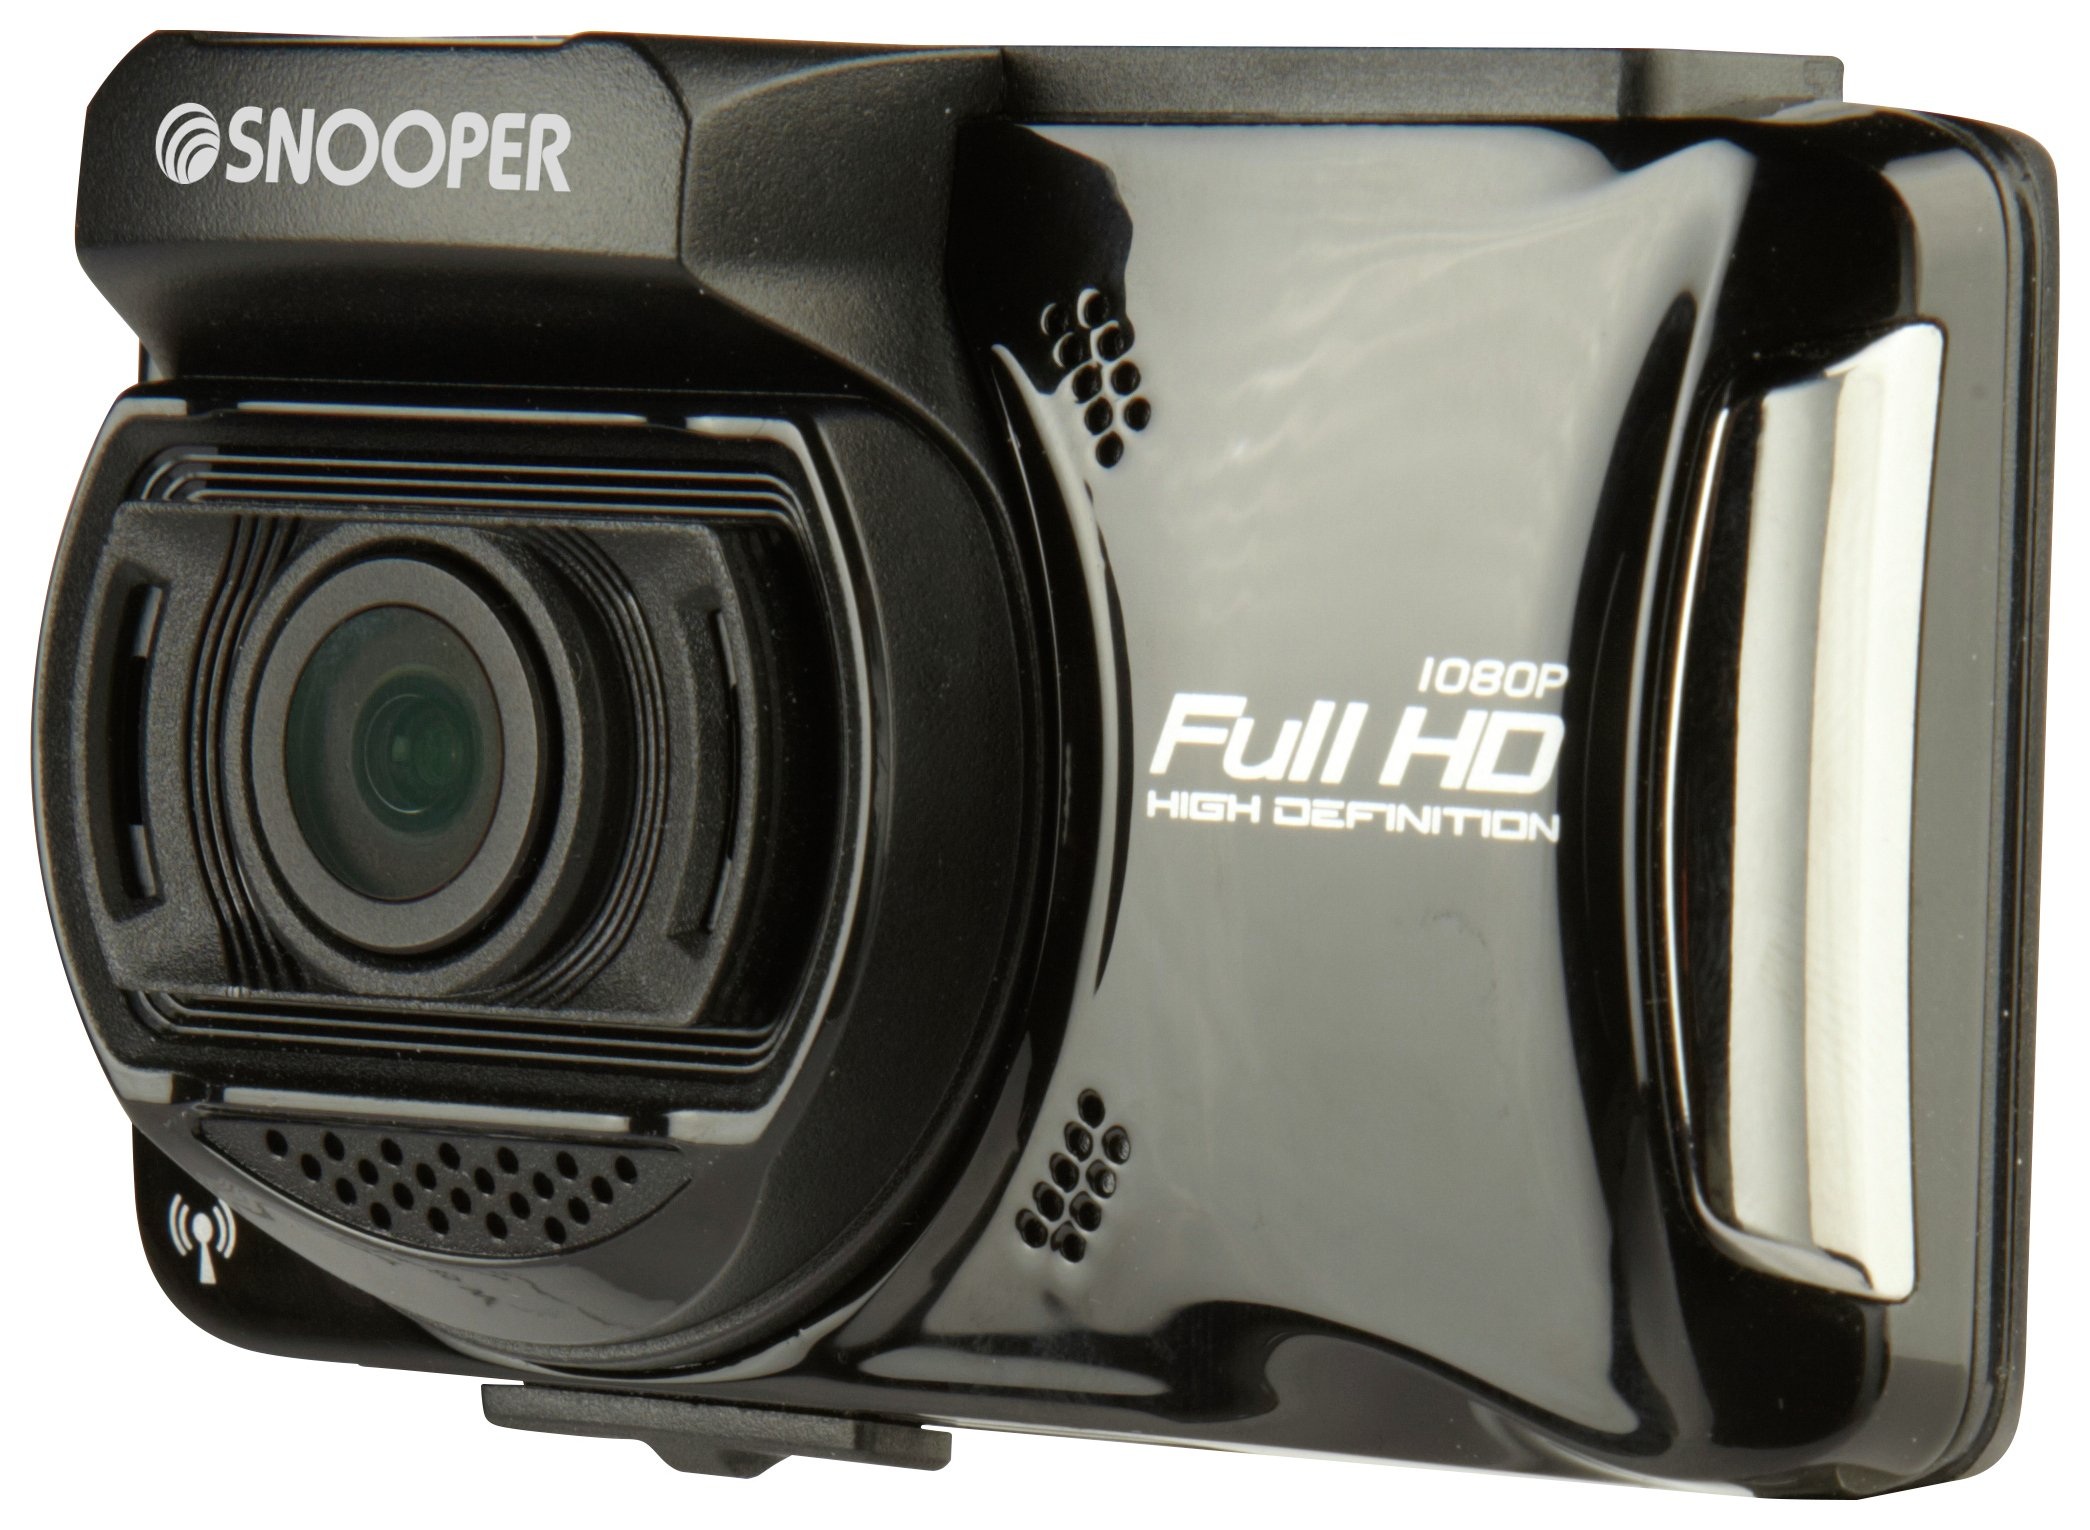 snooper-dvr-4hd-dash-cam-with-speed-camera-alerts